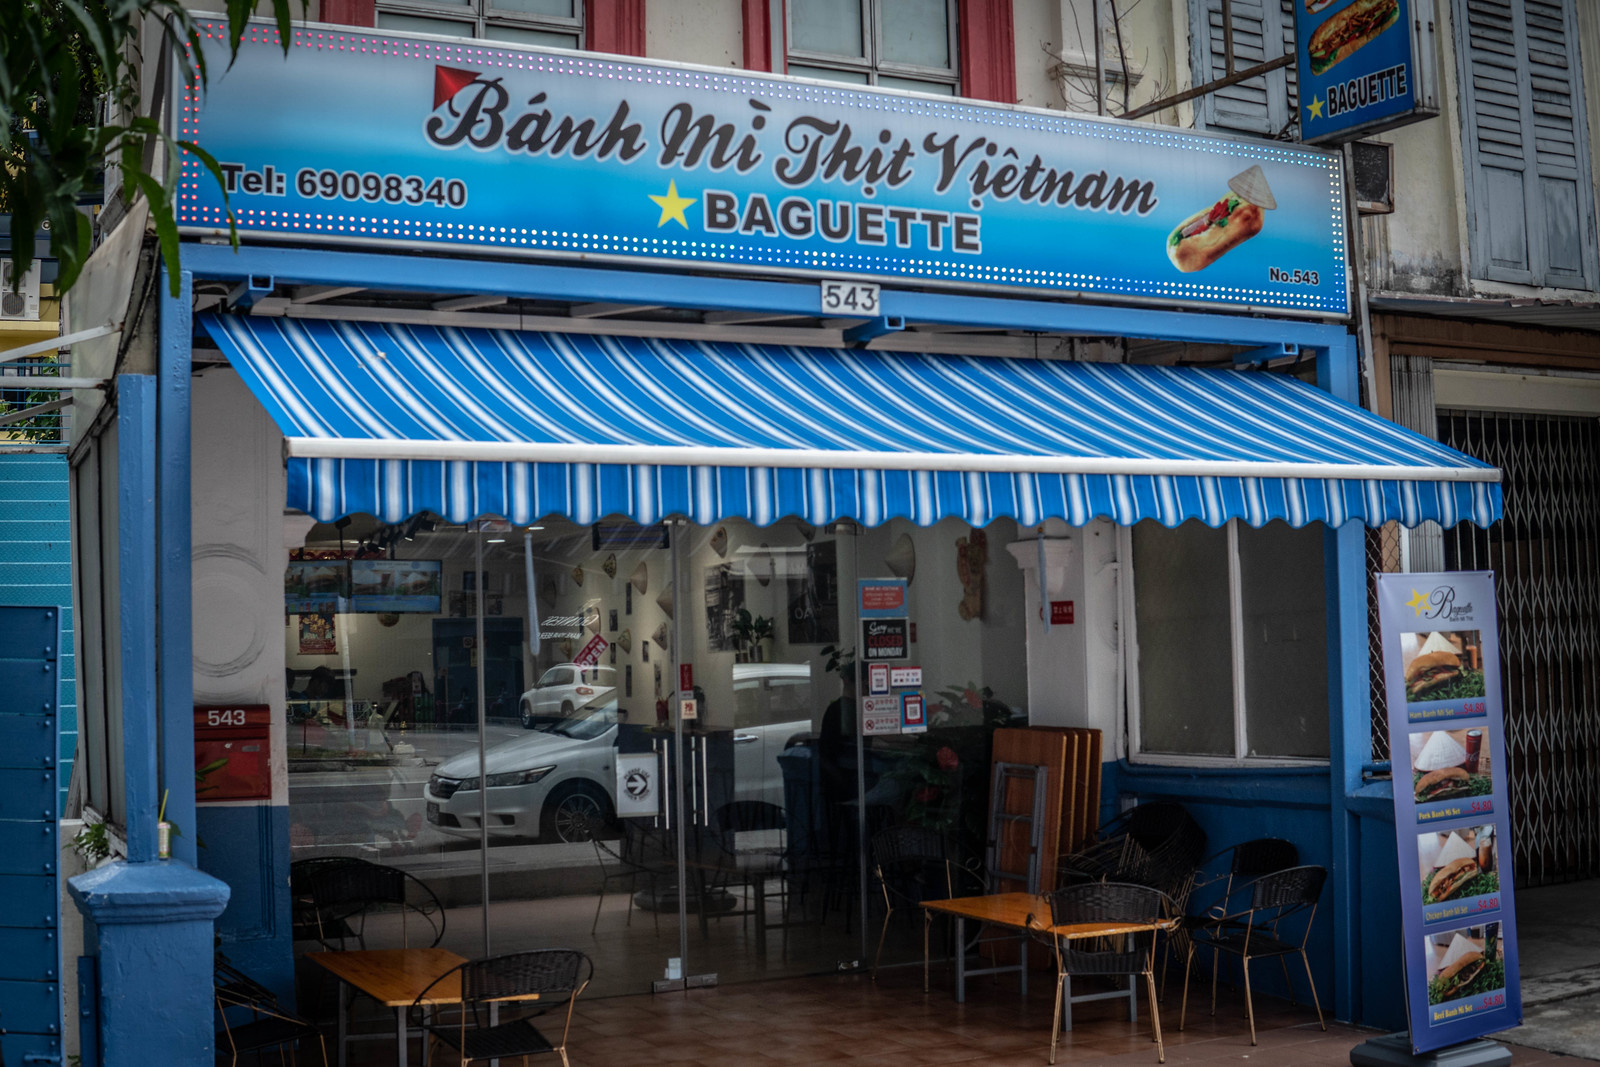 Banh Mi Thit by Star Baguette – A Hidden Gem in Geylang that Bakes Its Own Baguette Daily!